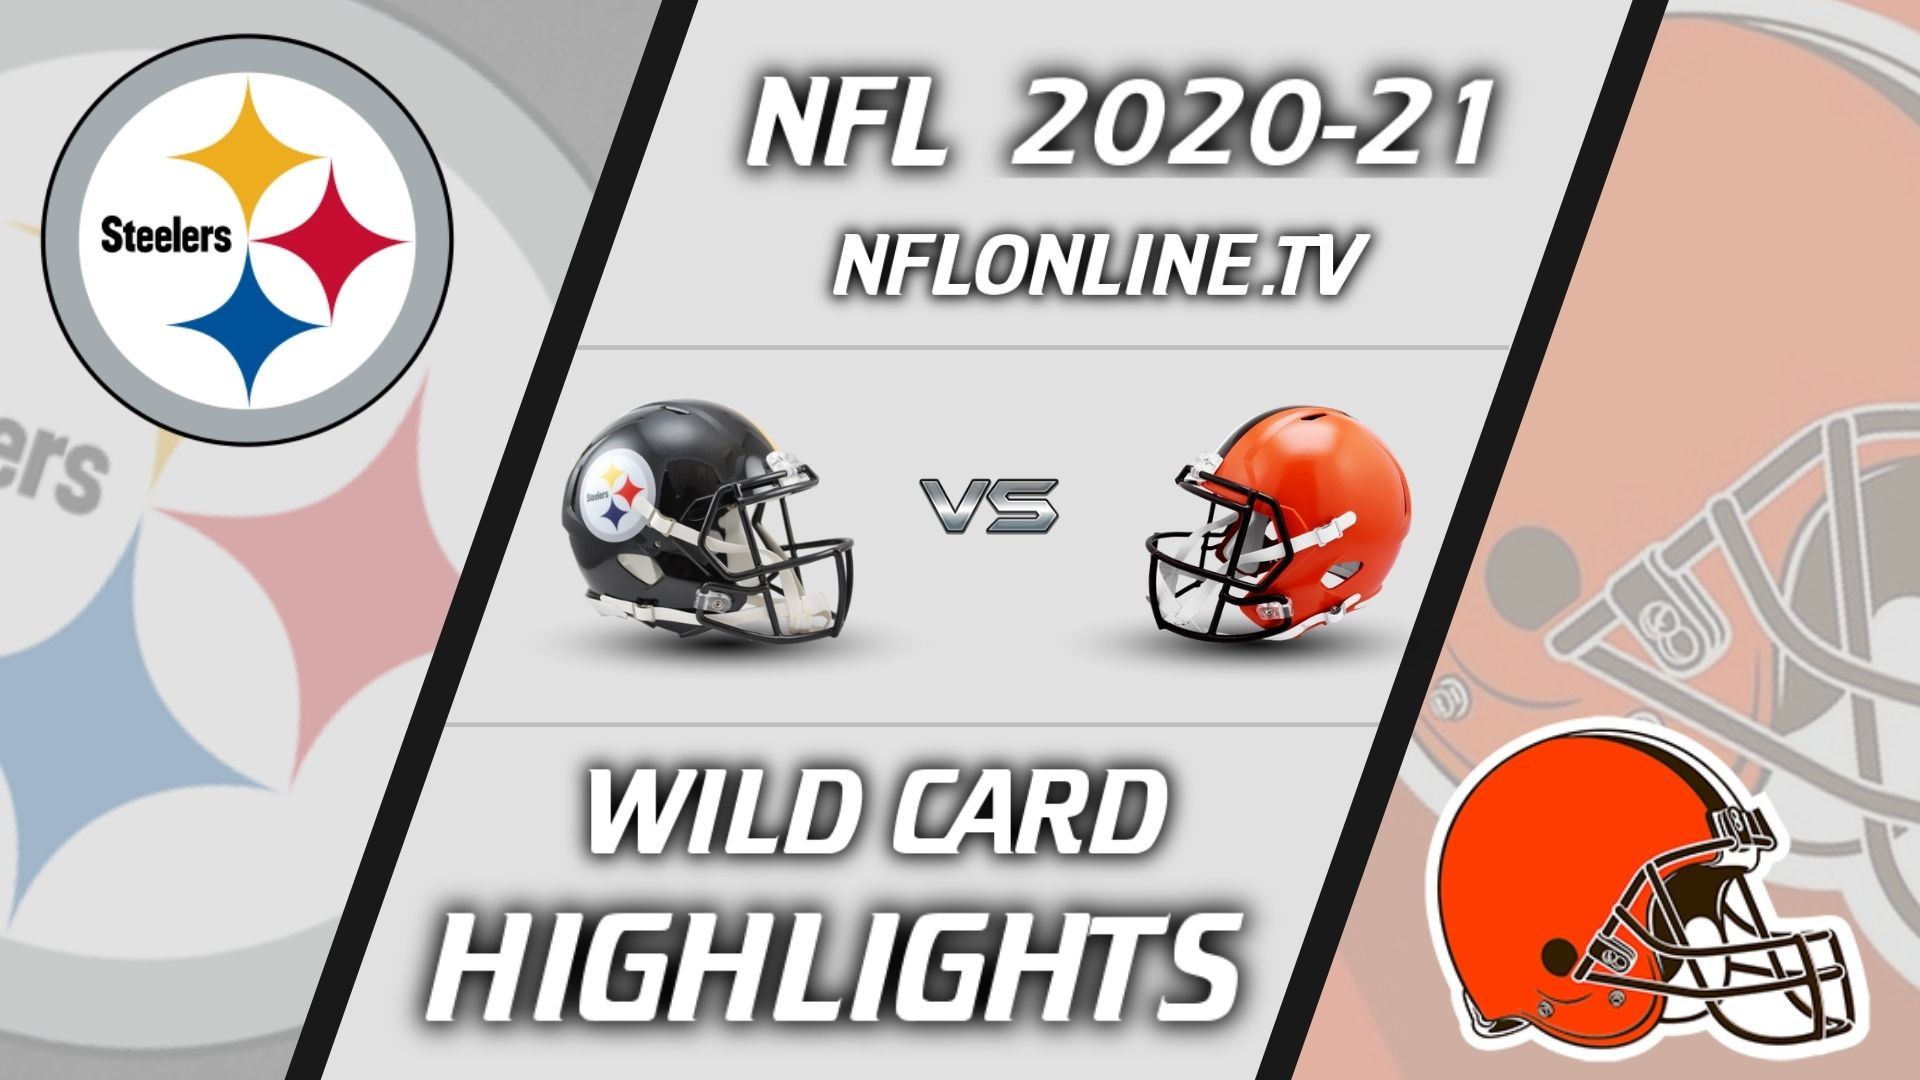 Steelers Vs Browns Highlights 2021 NFL Wild Card